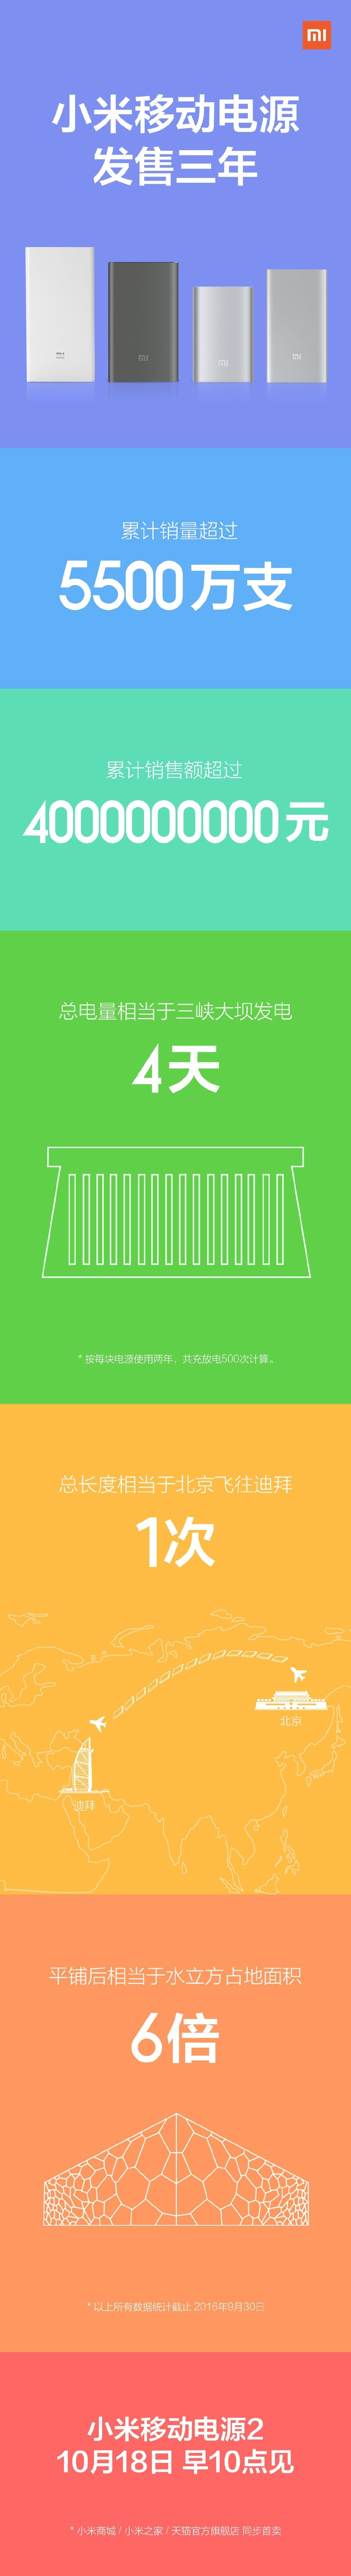 xiaomi-power-bank-infographic